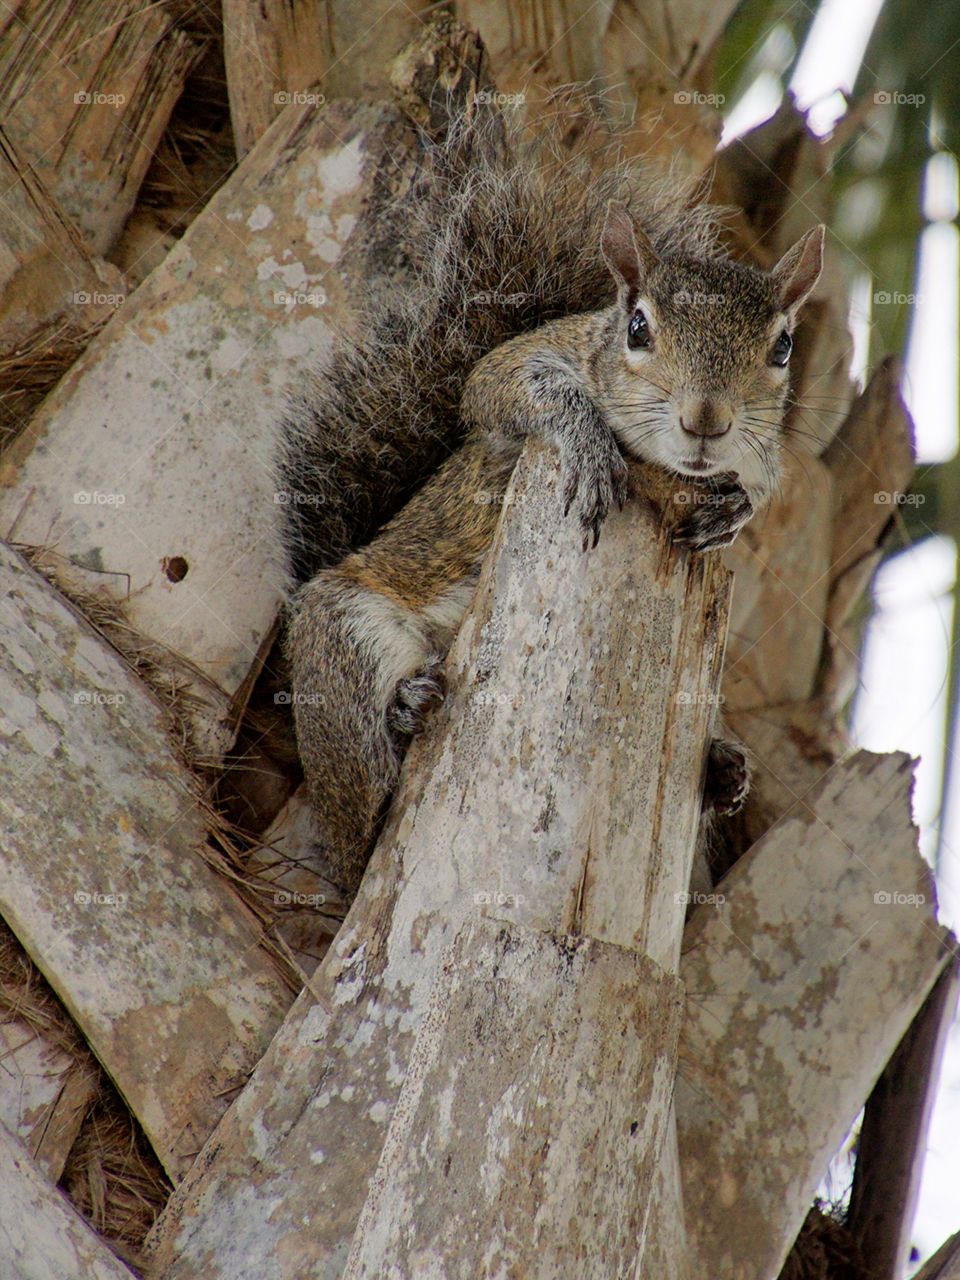 Squirrel on a Ledge. Grey Squirrel looking over ledge of Cabbage Palm tree